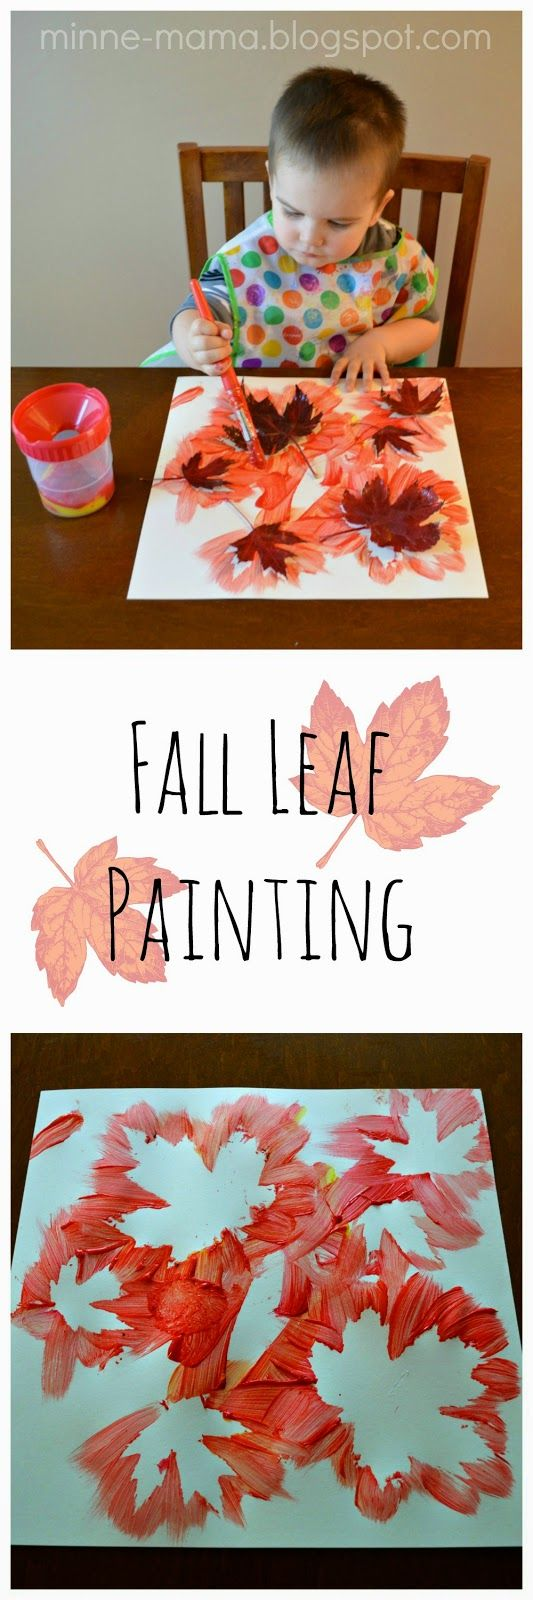 Minne-Mama: Fall Leaf Painting #fall craft for kids